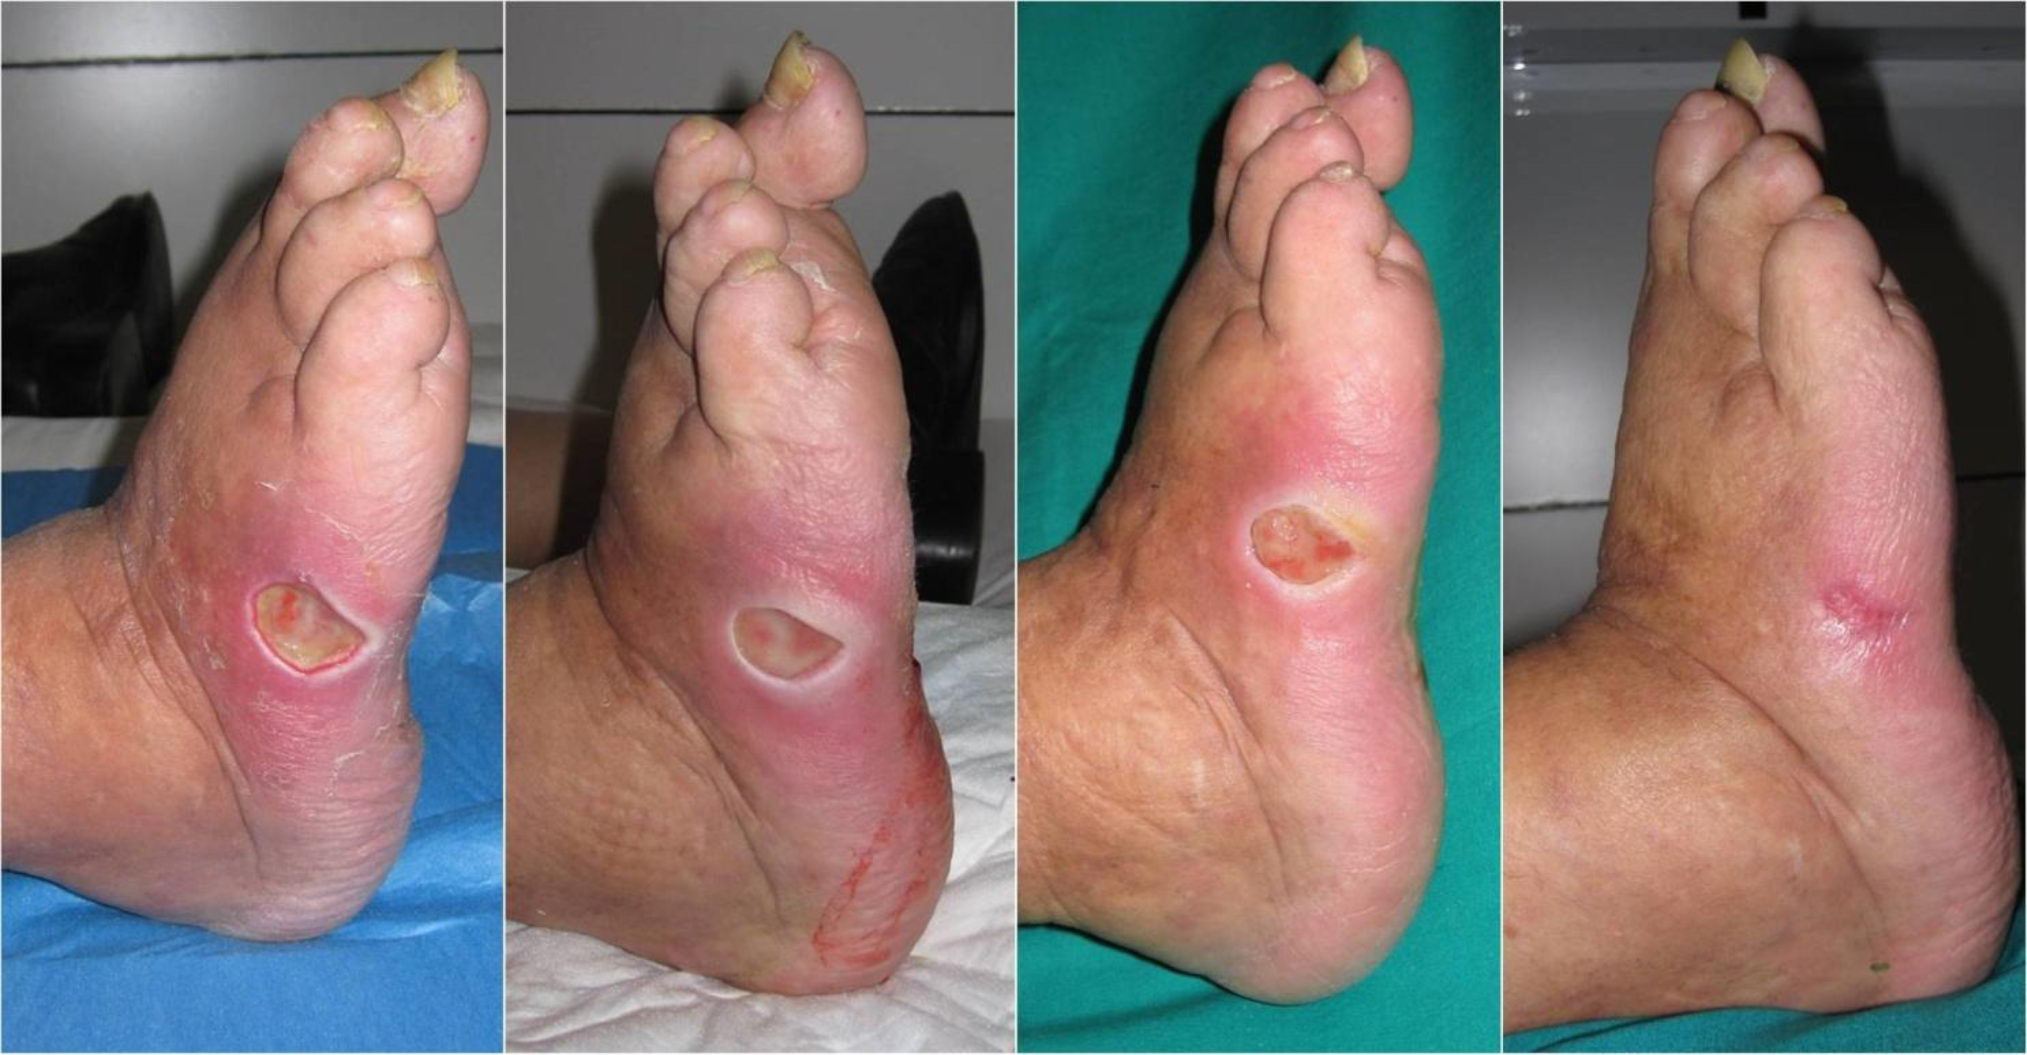 Diabetic Foot Treatment With Stem Cells Swiss Medica